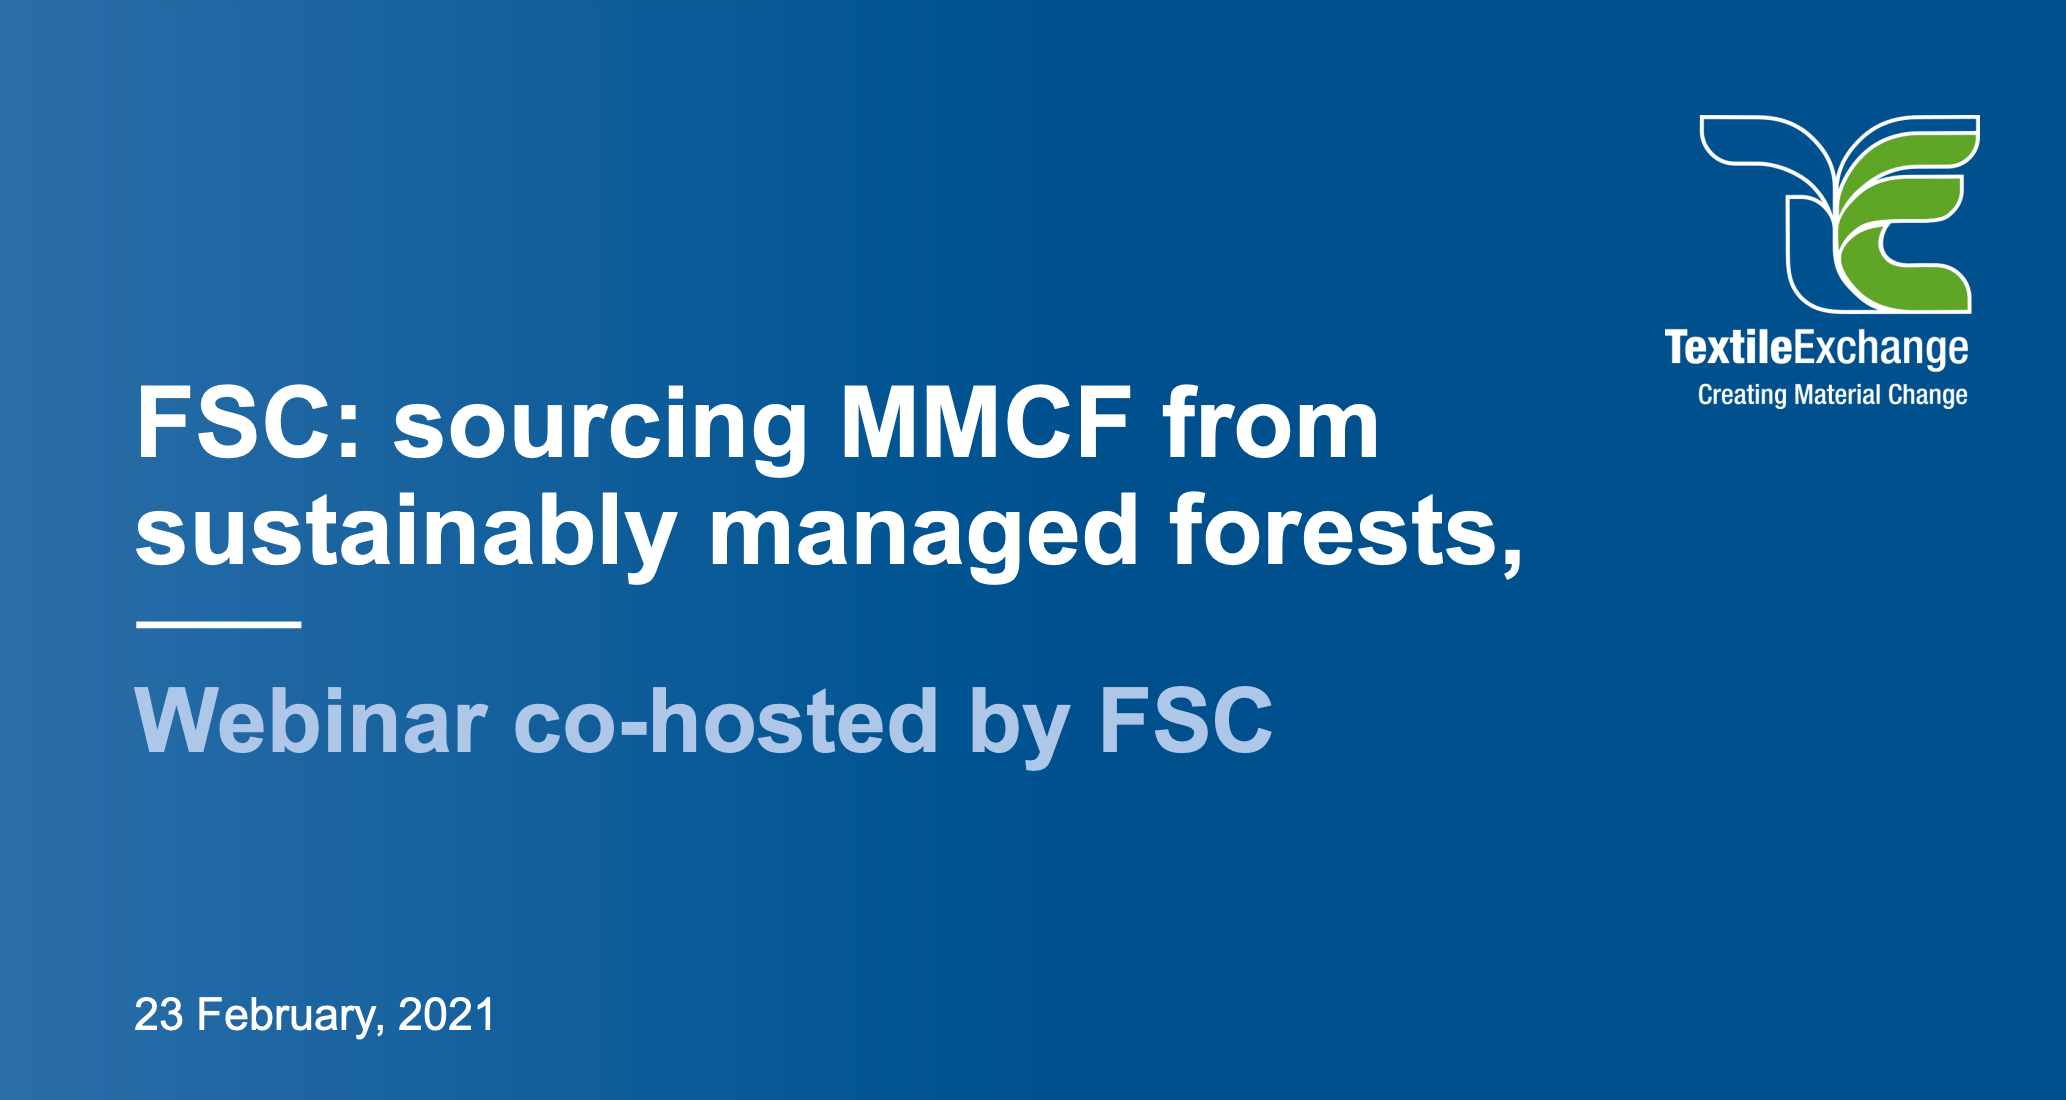 PEFC: FSC: sourcing MMCF from sustainably managed forests